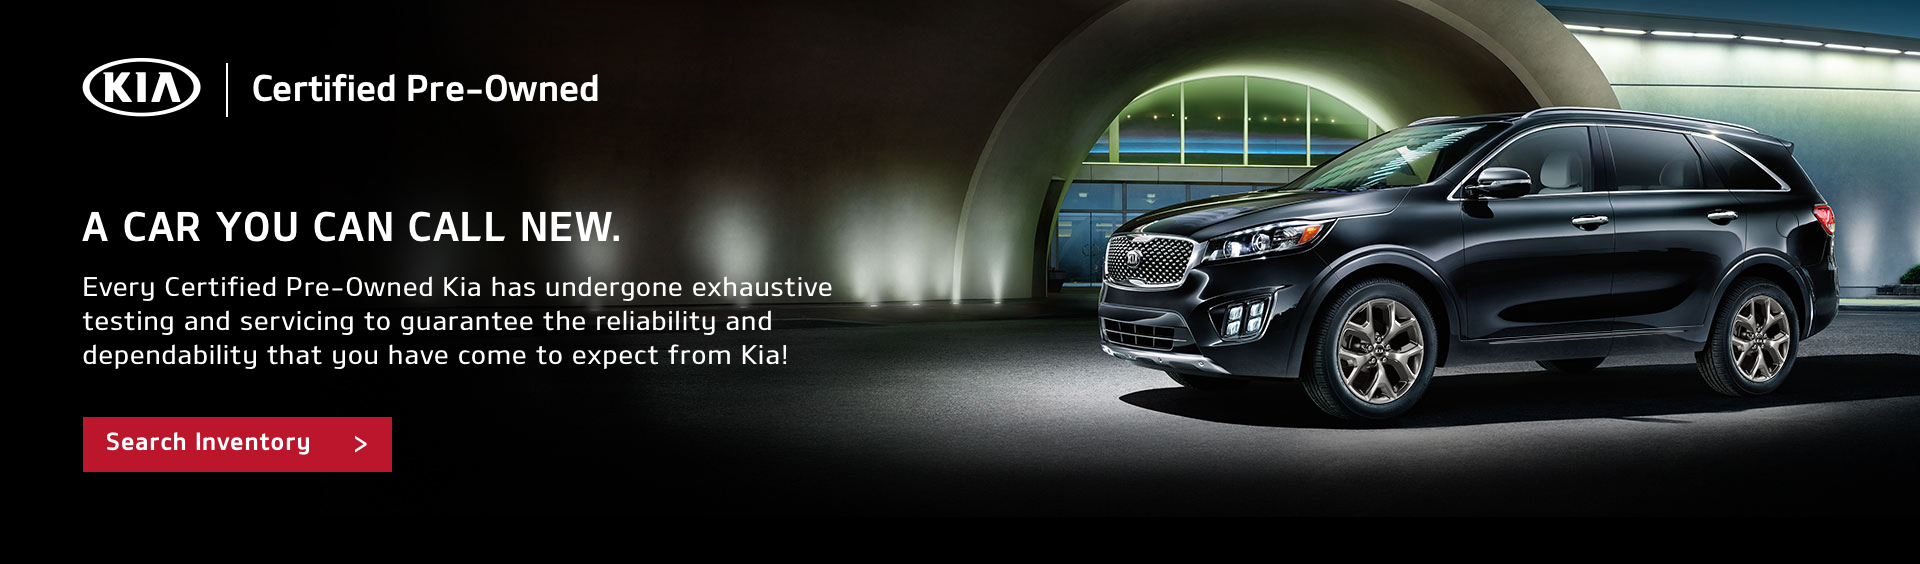 Benefits Of Kia Certified Preowned Vehicles